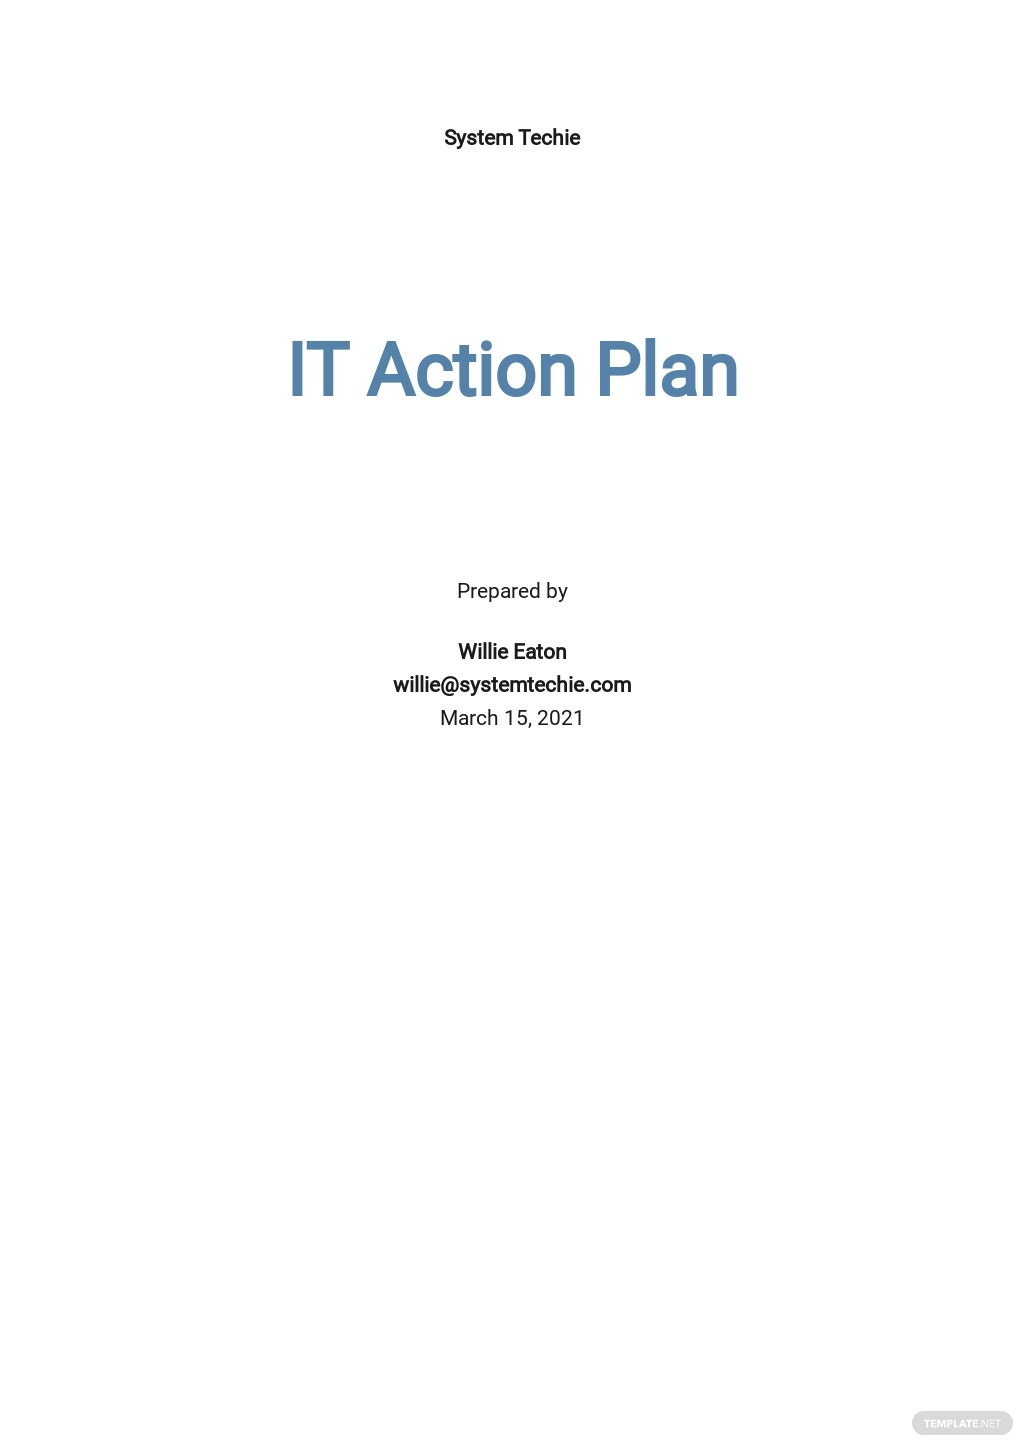 IT Action Plan Template.jpe